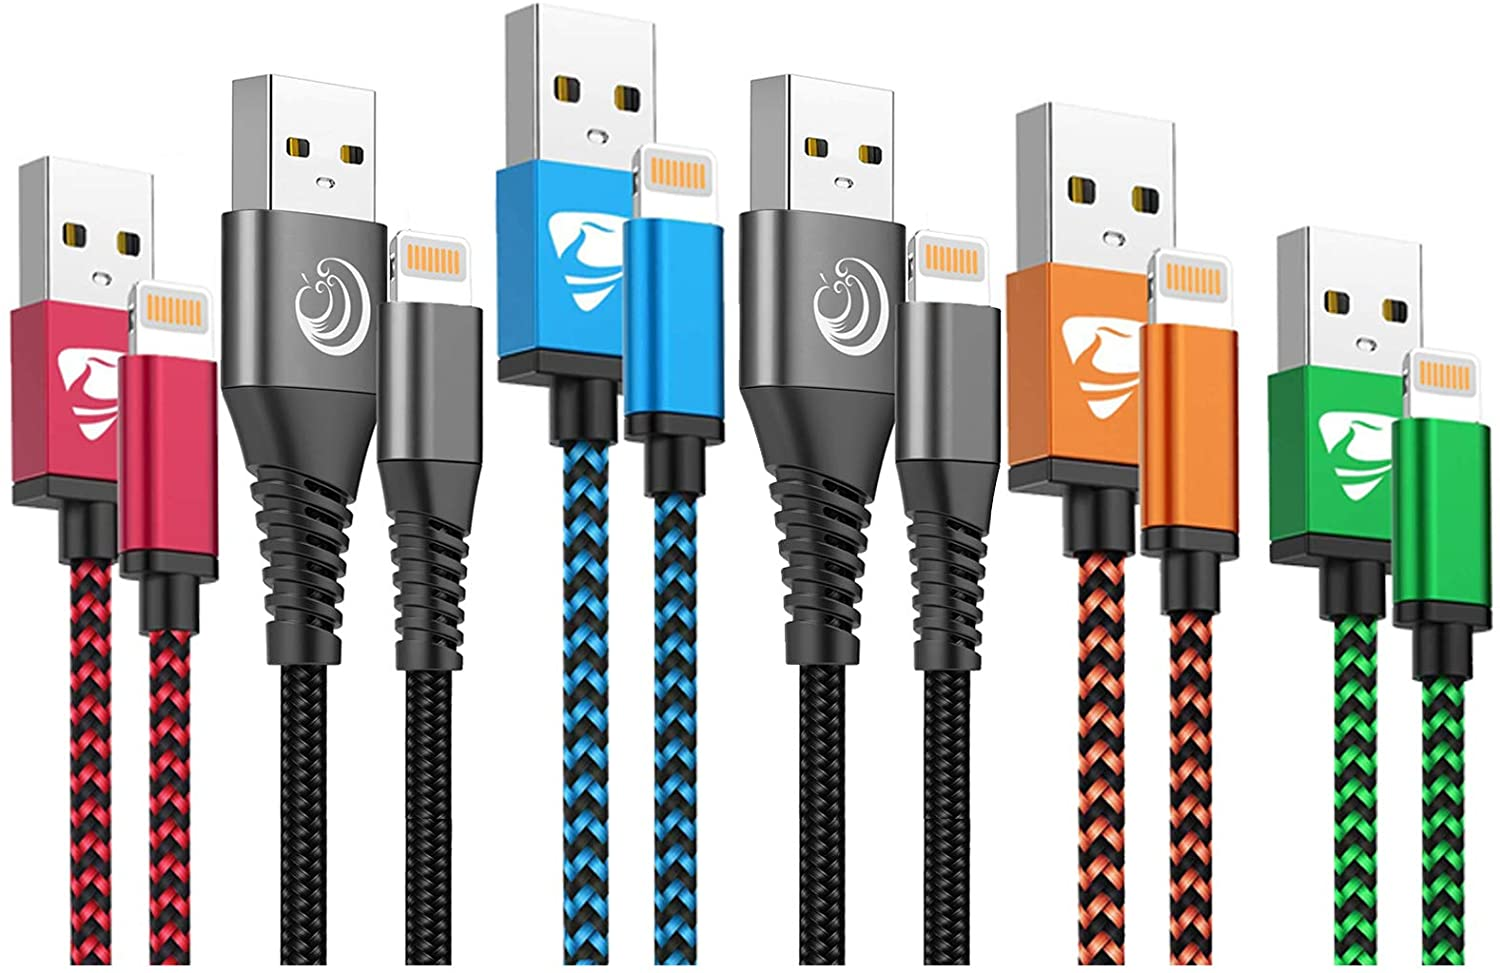 Aioneus iPhone 12 Charger Cord 6 Pack Nylon Braided Fast iPhone Charging Cord Nylon Braided iPhone Charging Cable Compatible with iPhone 12 Mini 12 Pro max 11 Pro max XR max 8 7 6 6s SE 2020,iPad